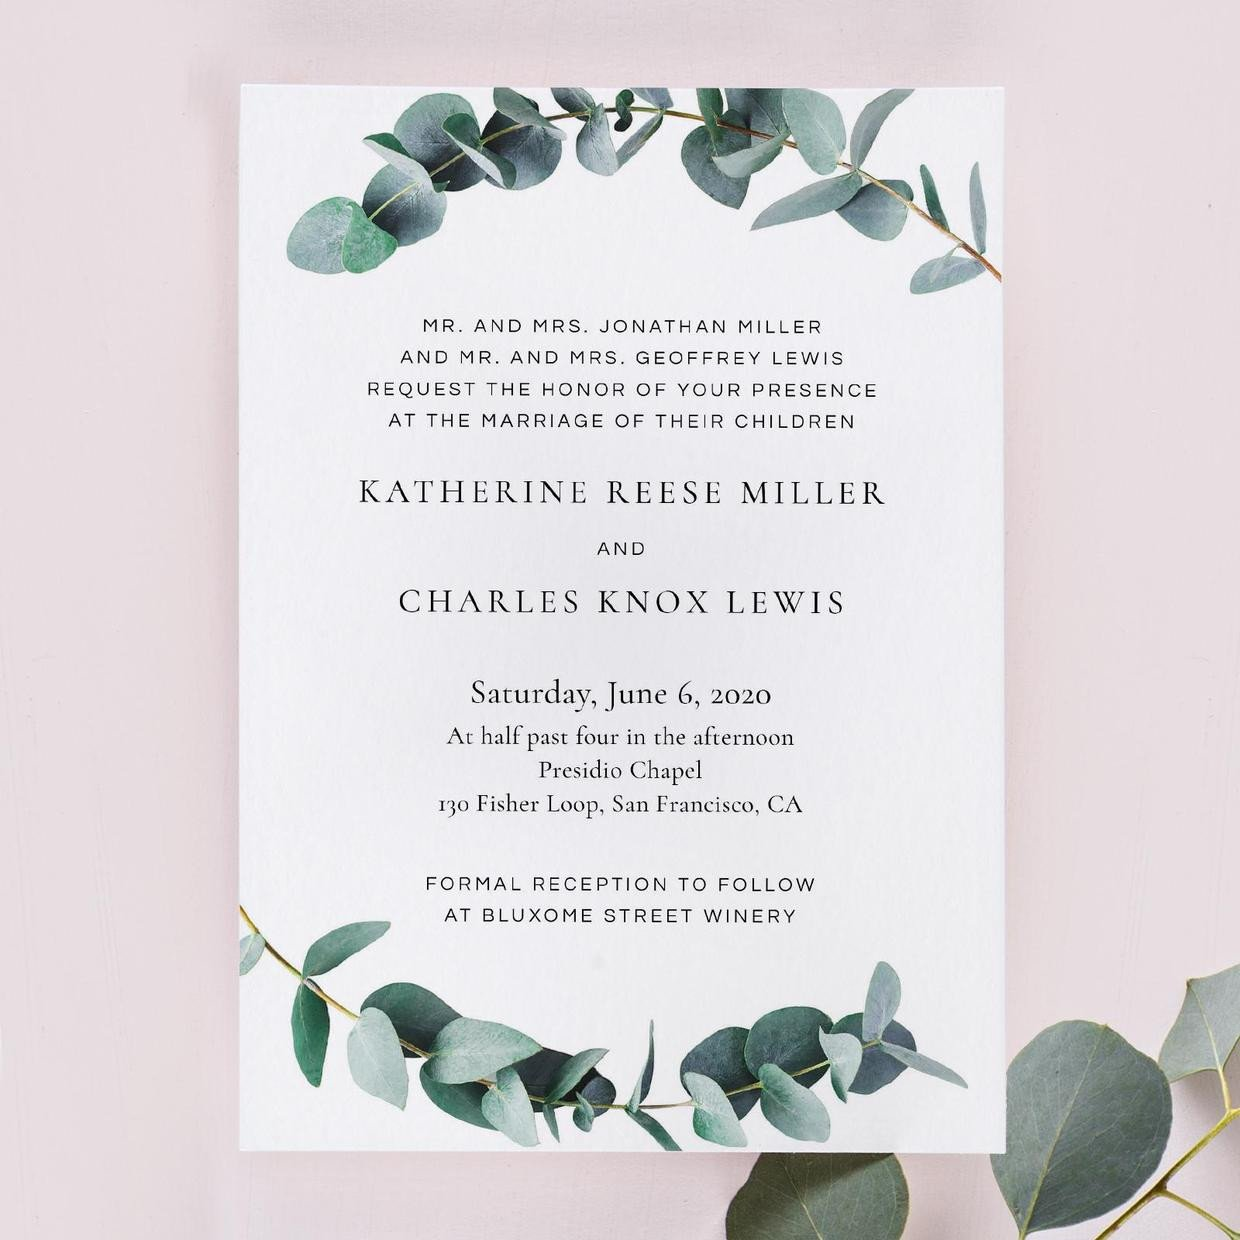 Sample Wedding Invitations Templates Wedding Invitation Wording Examples In Every Style